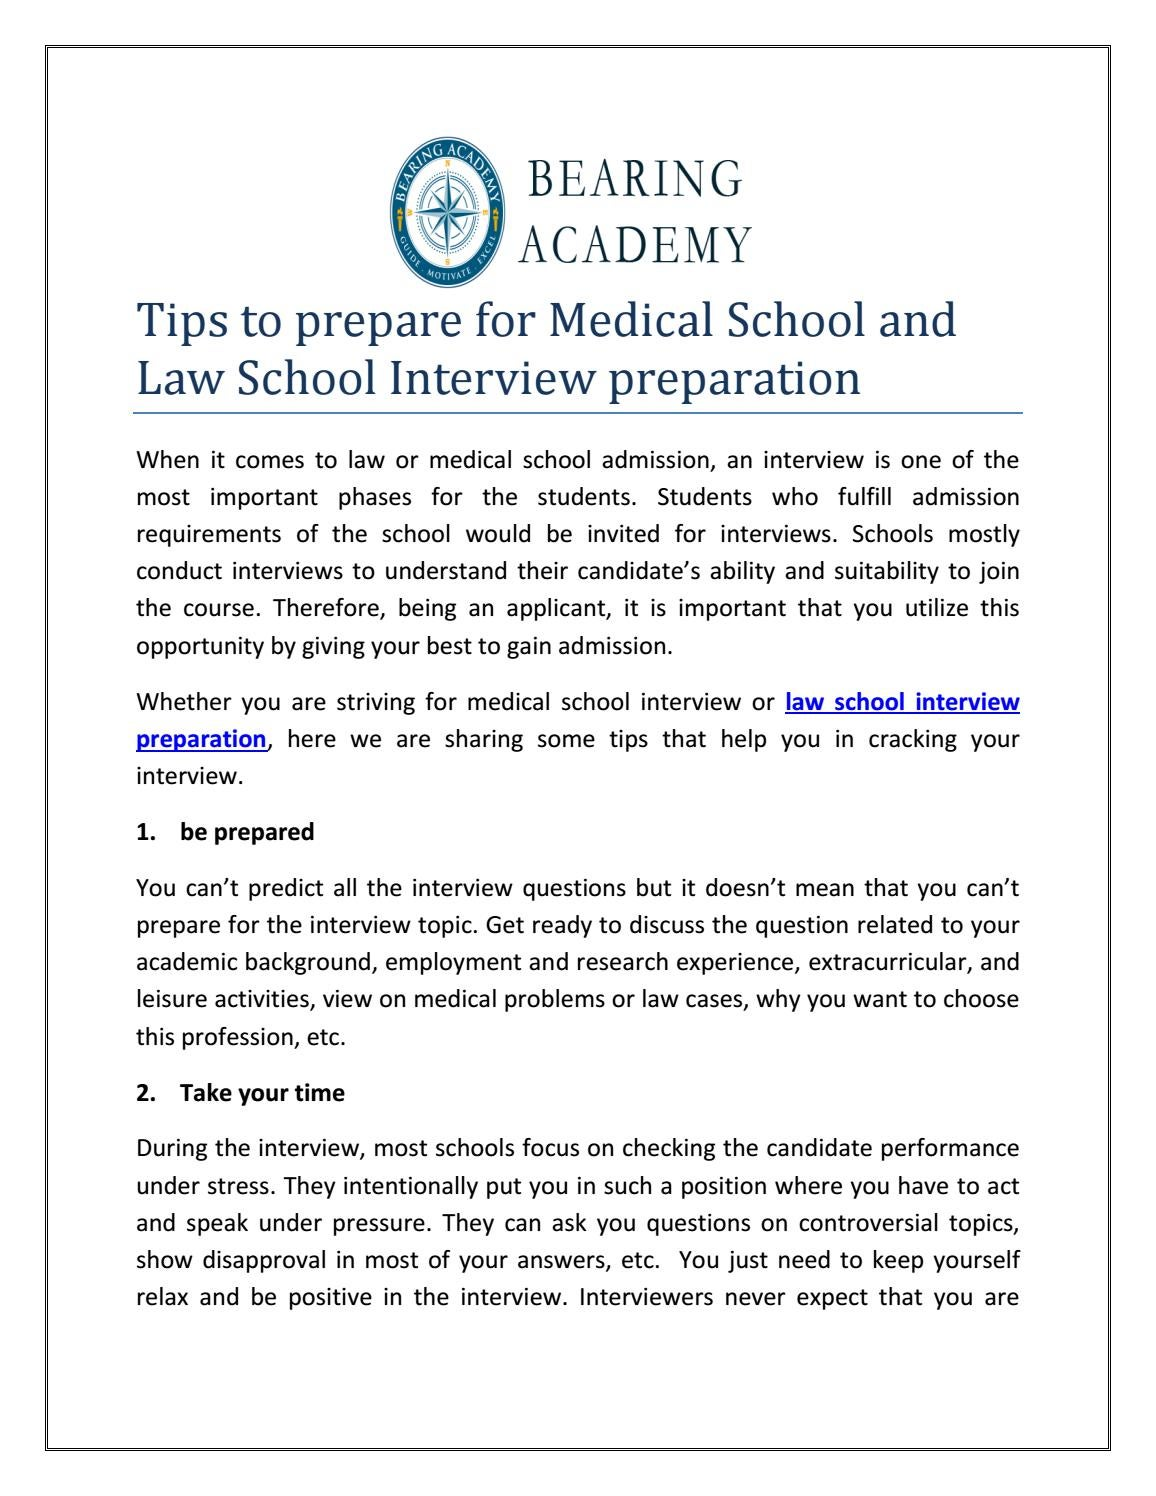 Tips to prepare for Medical School and Law School Interview